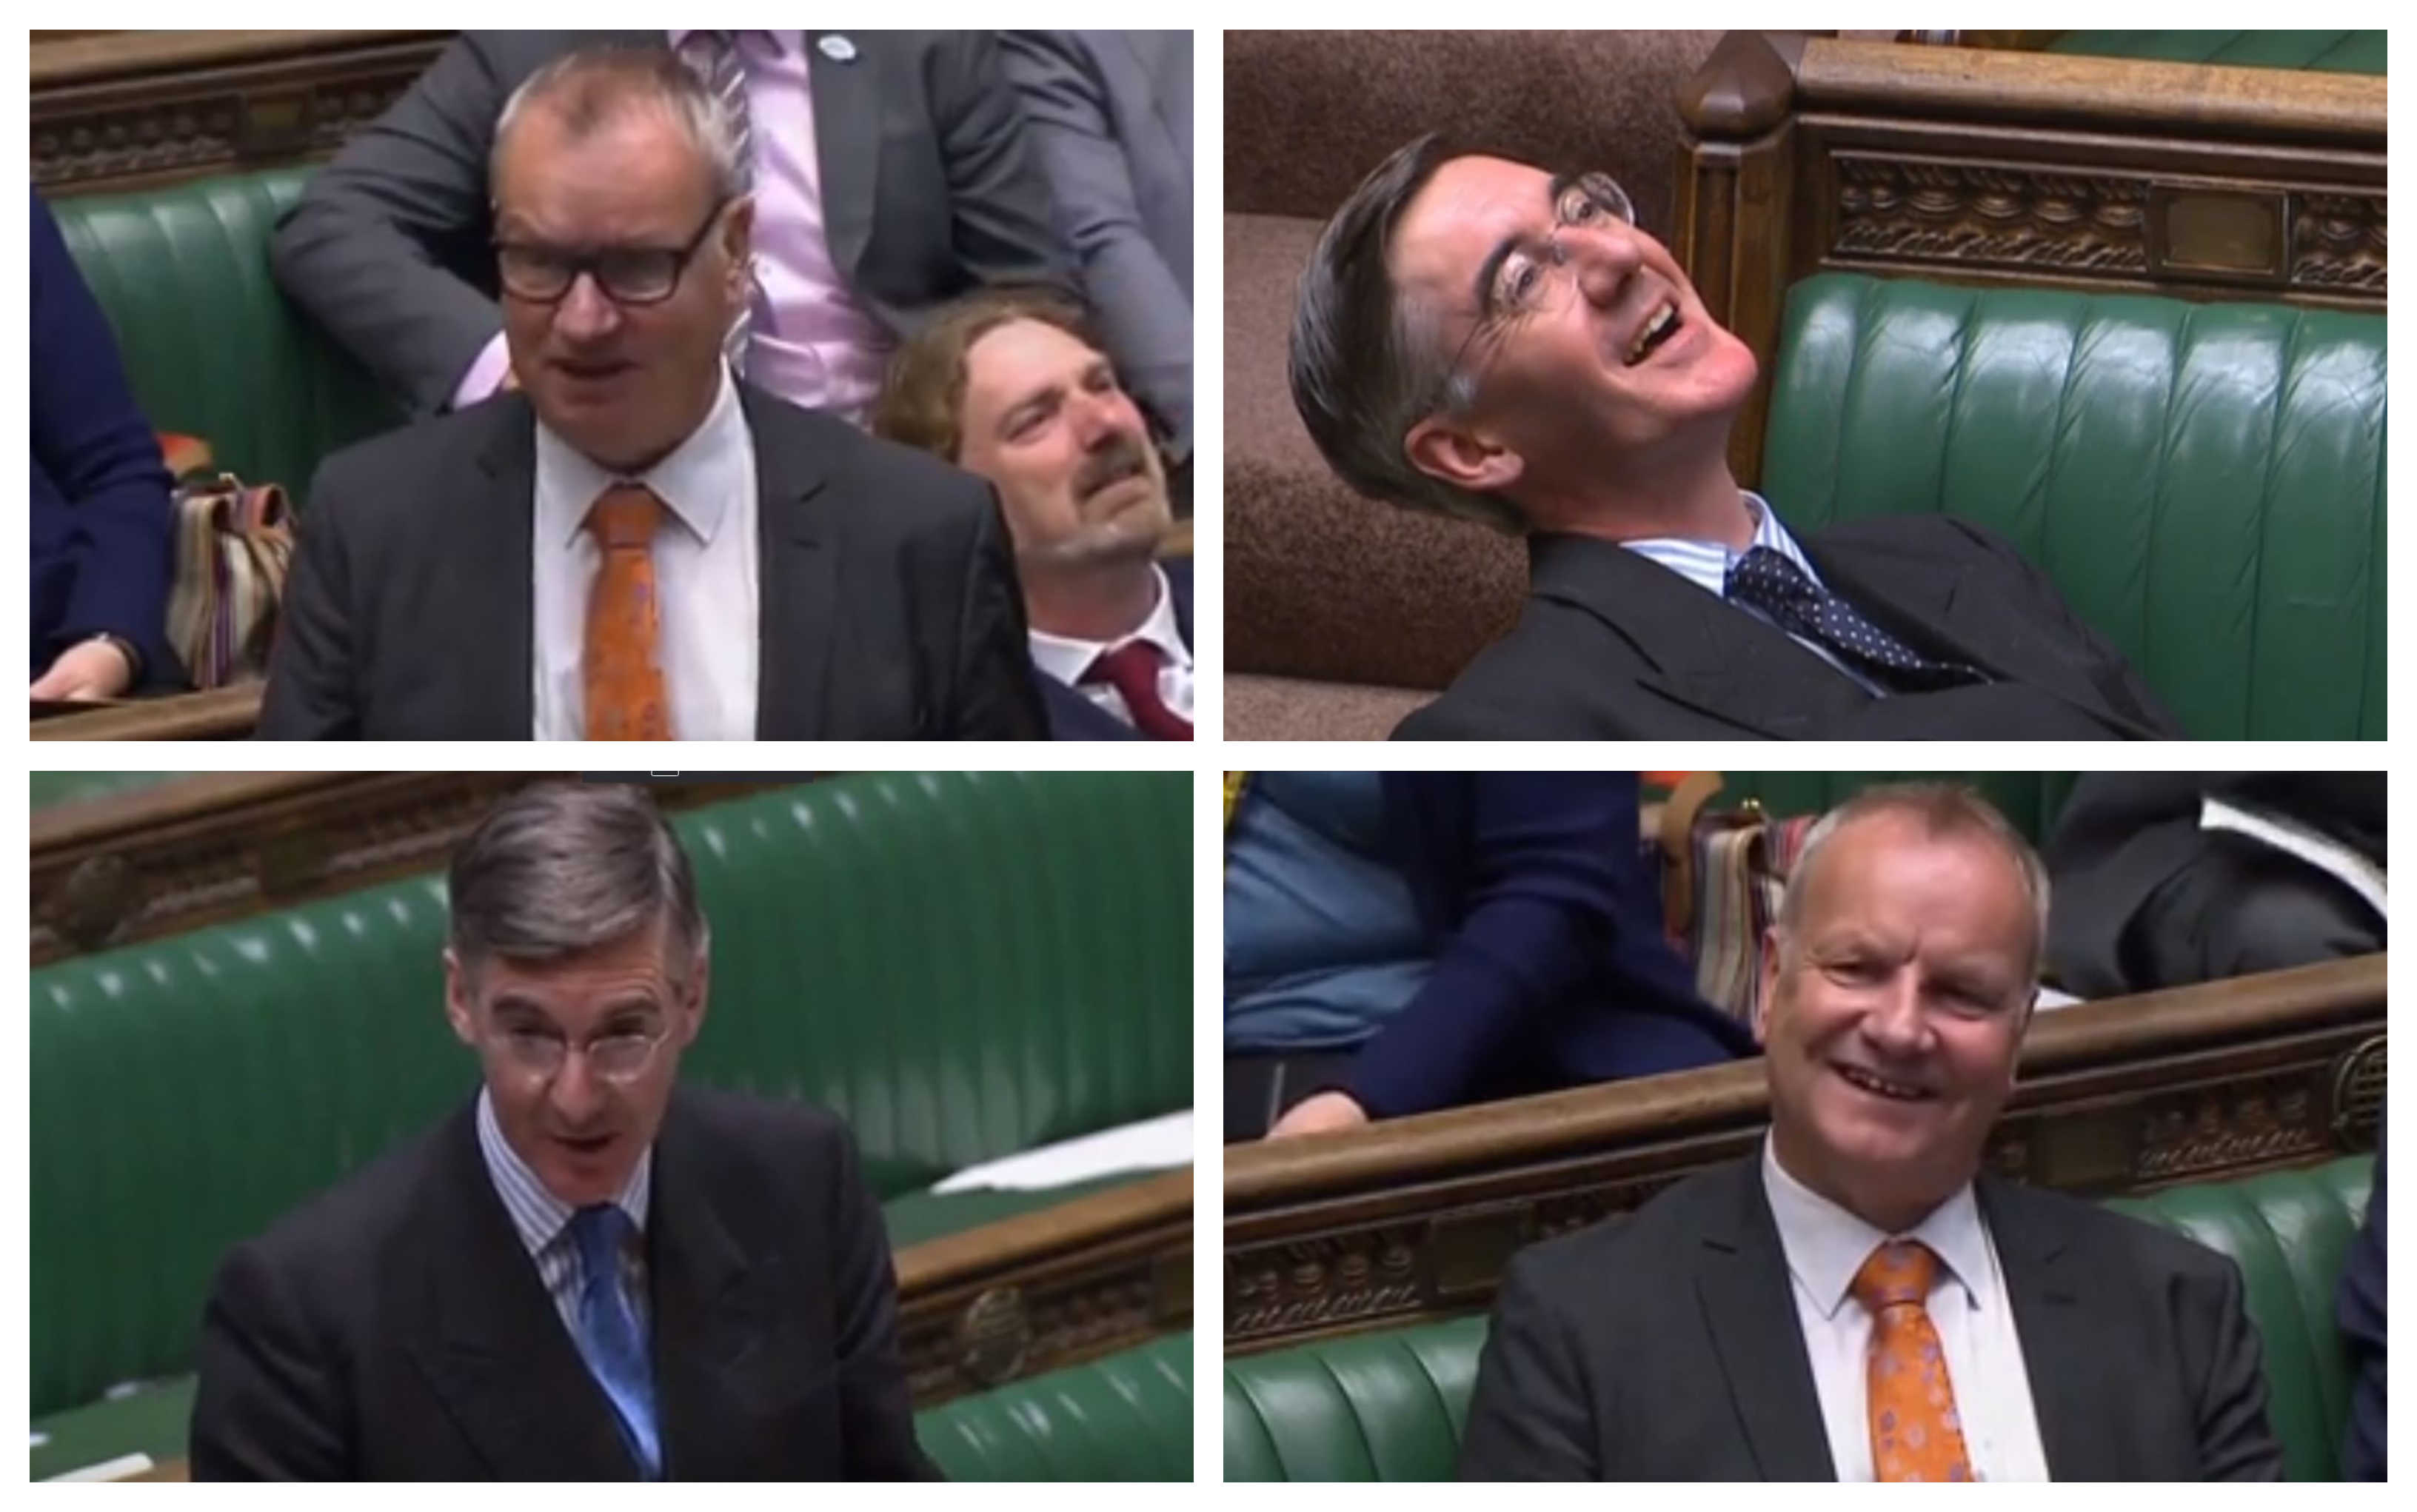 Jacob Rees-Mogg and Pete Wishart were involved in an exchange in the House of Commons.